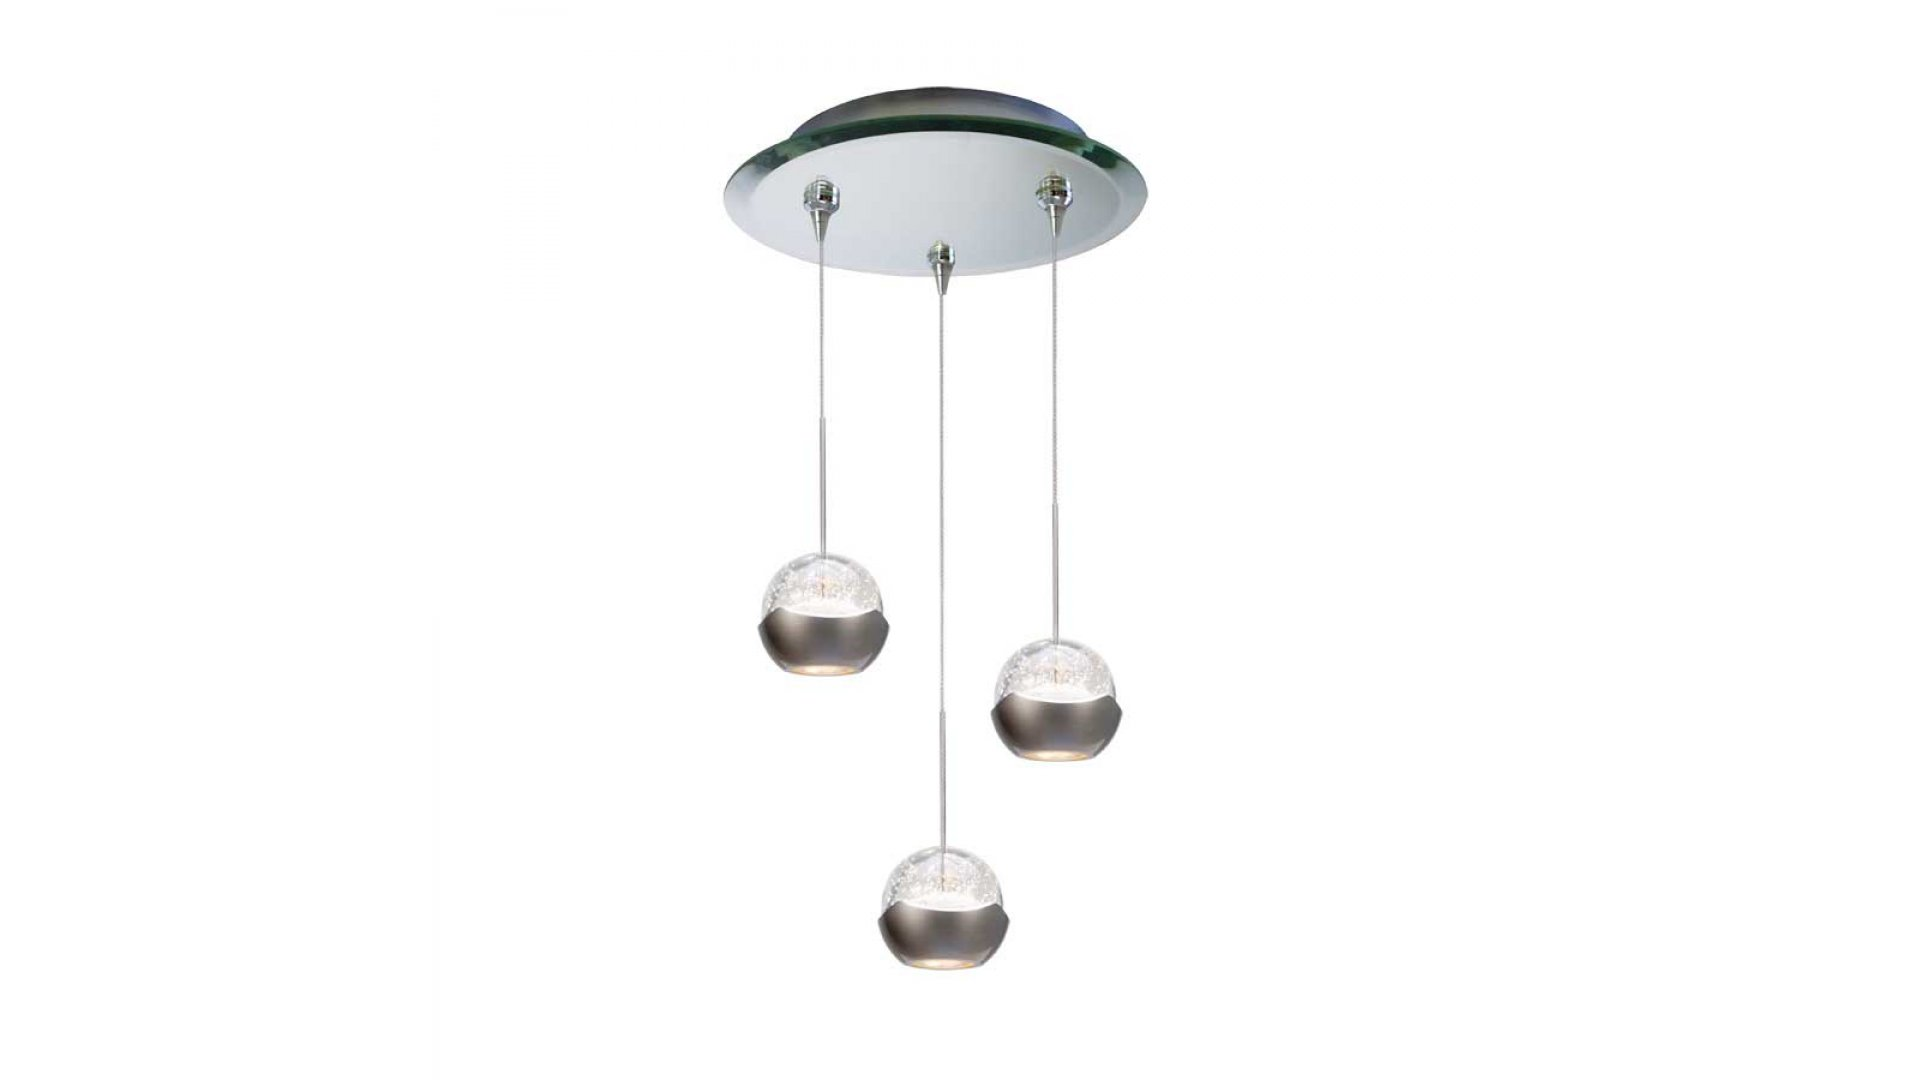 Wac Lighting Qmp Led311 3 Mr Genesis Led Multi Light Pendant